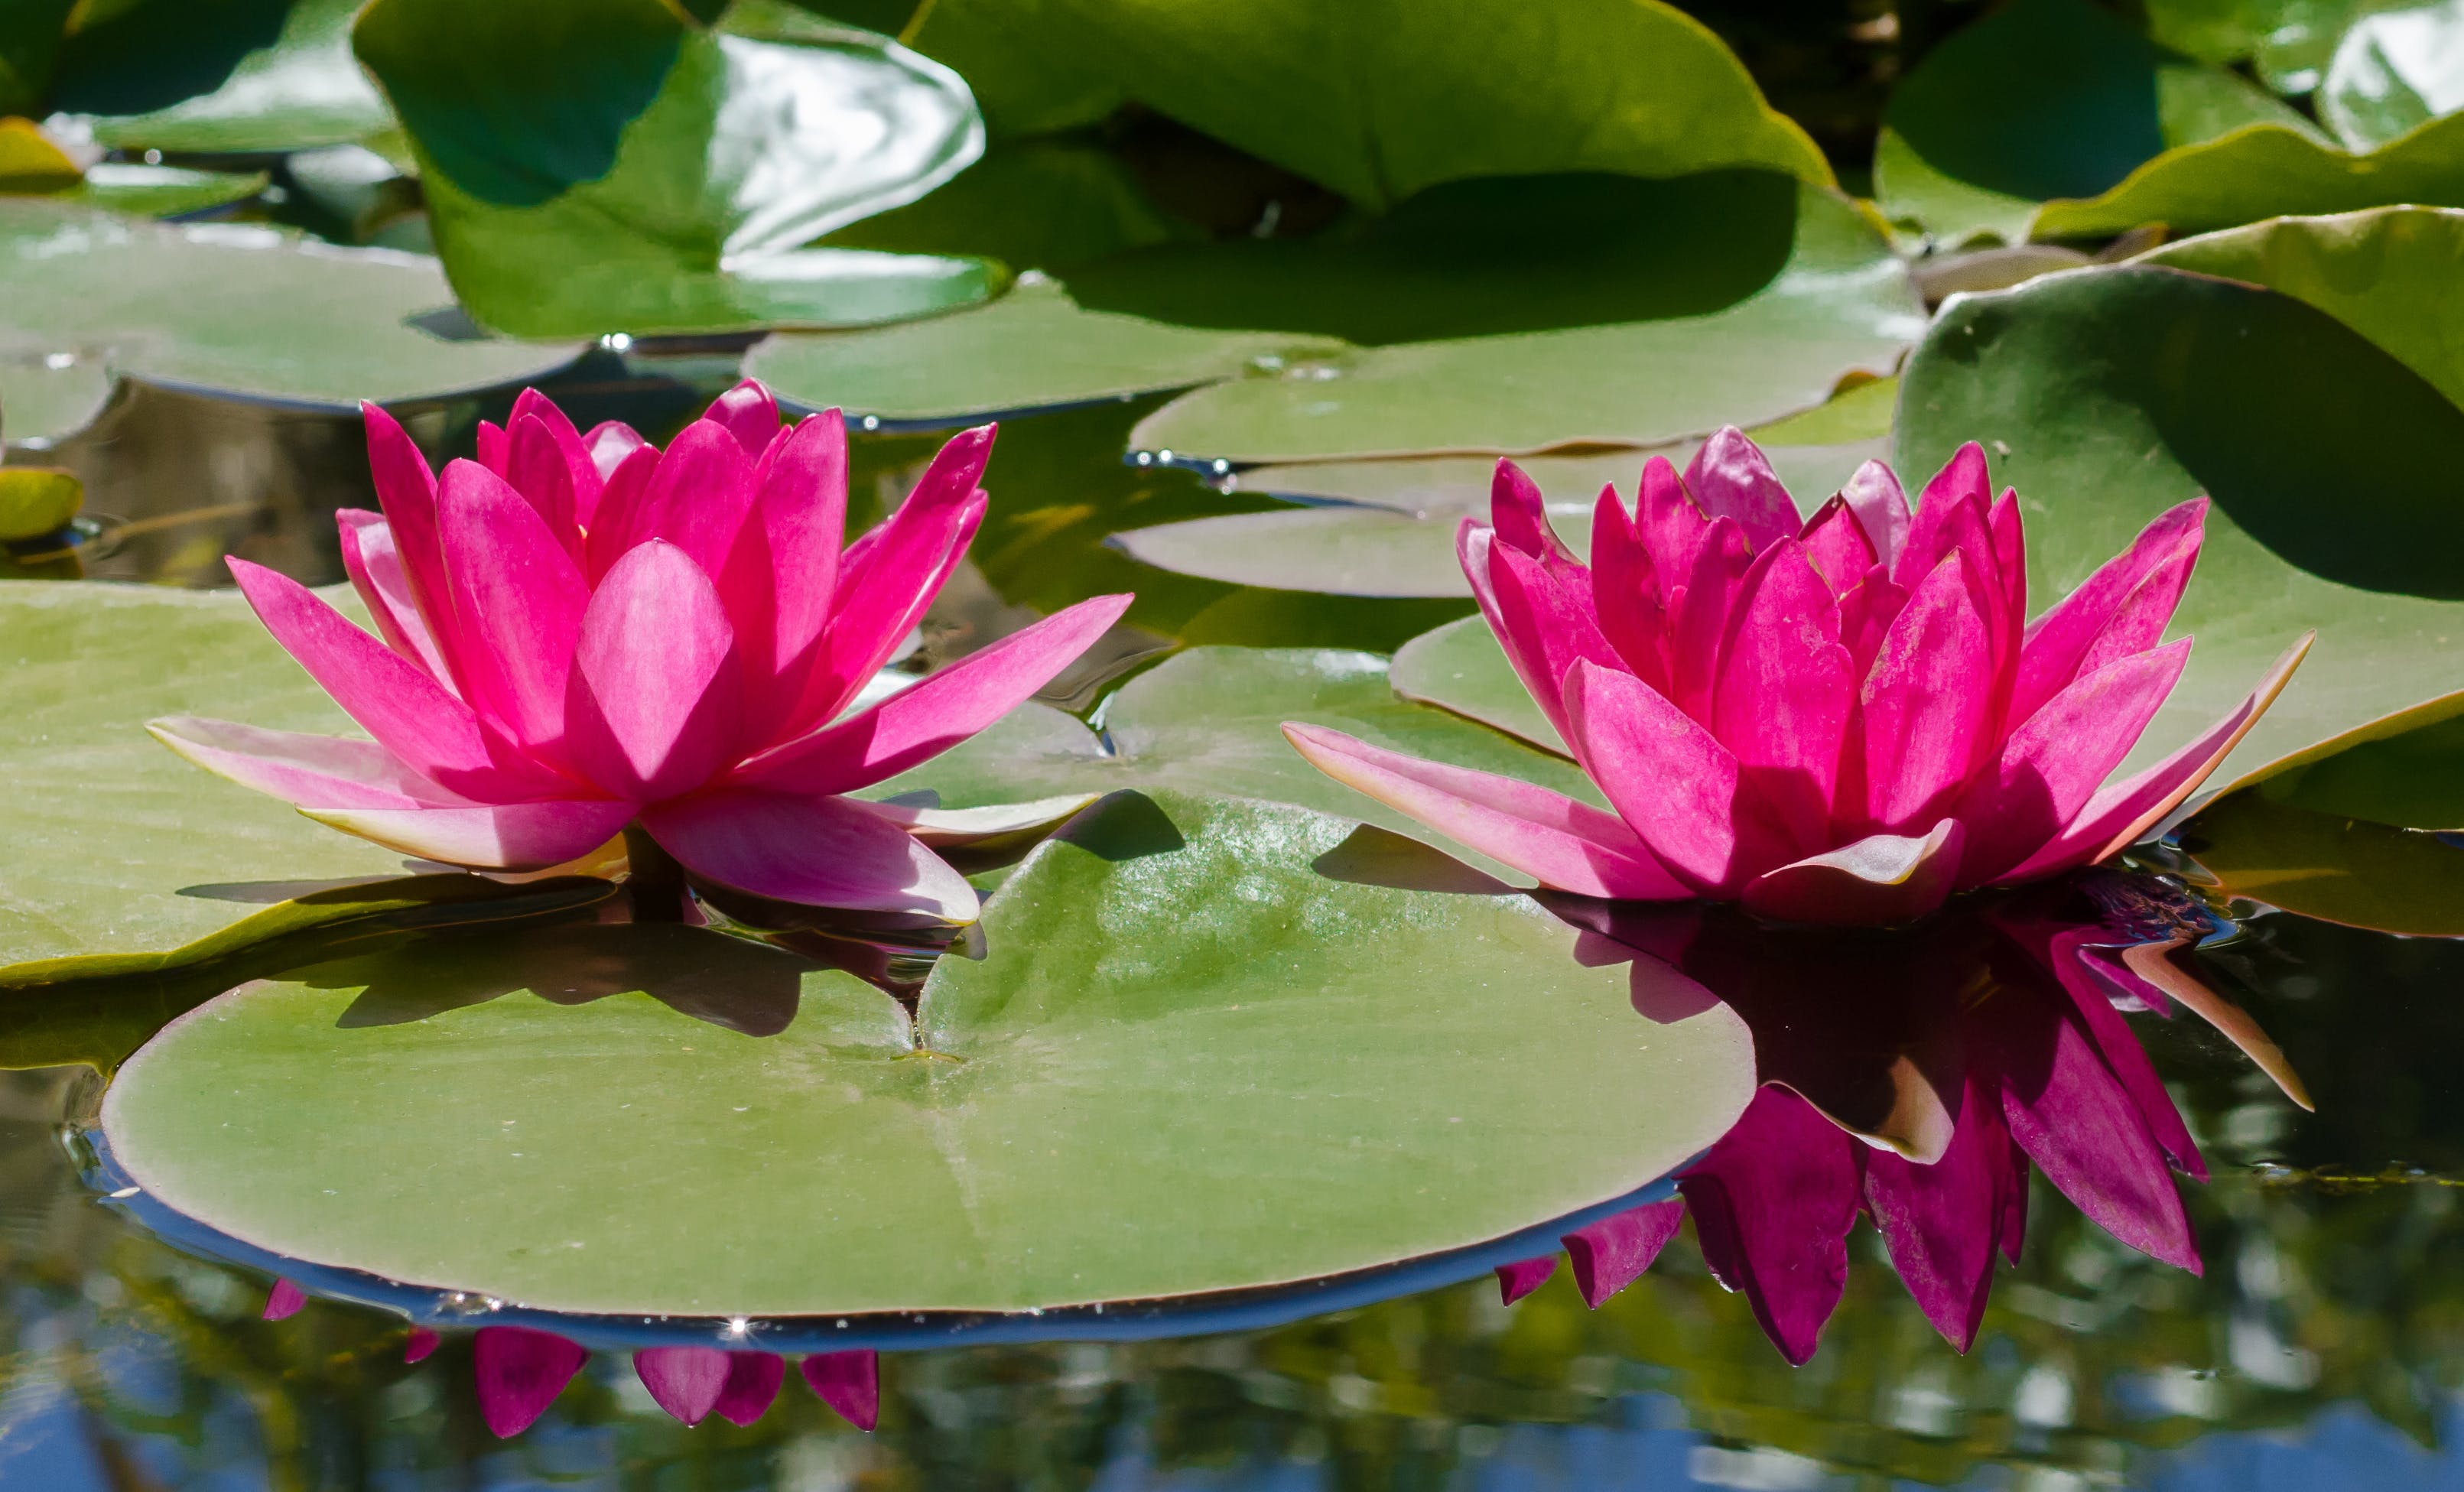 Pink Water Lily Flowers in Bloom